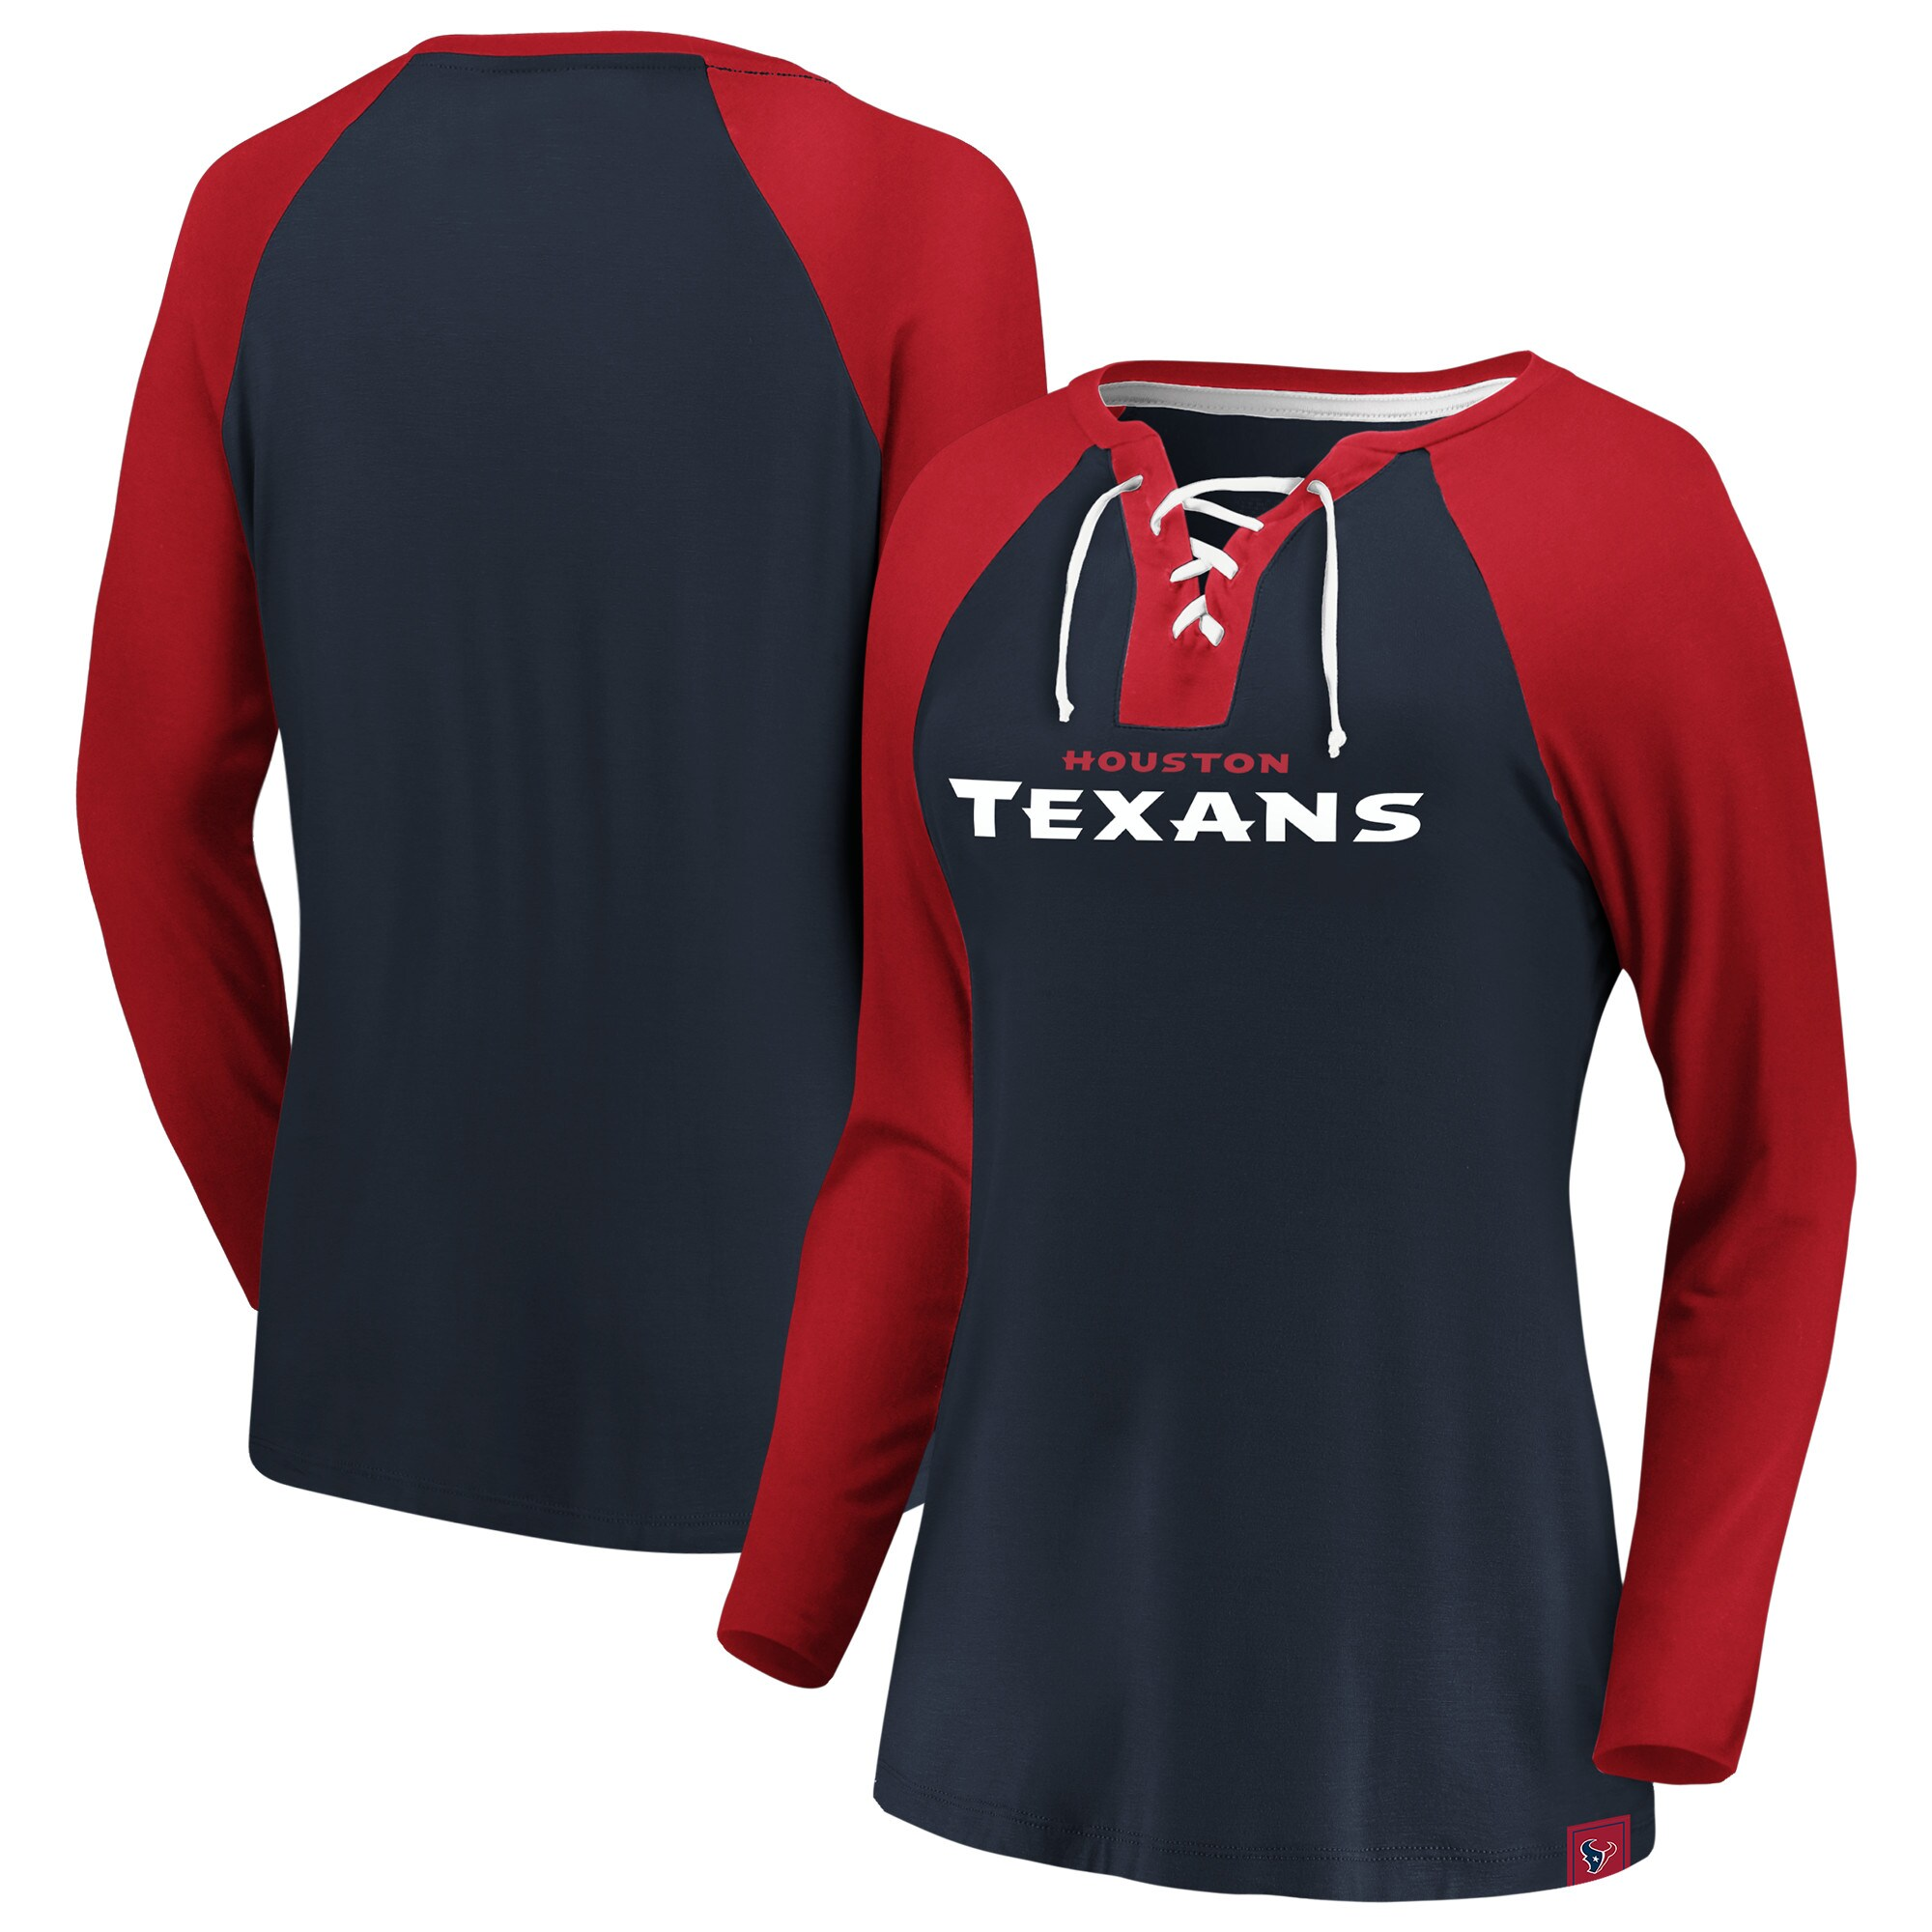 Houston Texans NFL Pro Line by Fanatics Branded Women's Break Out Play Lace-Up V-Neck Raglan Long Sleeve T-Shirt - Navy/Red